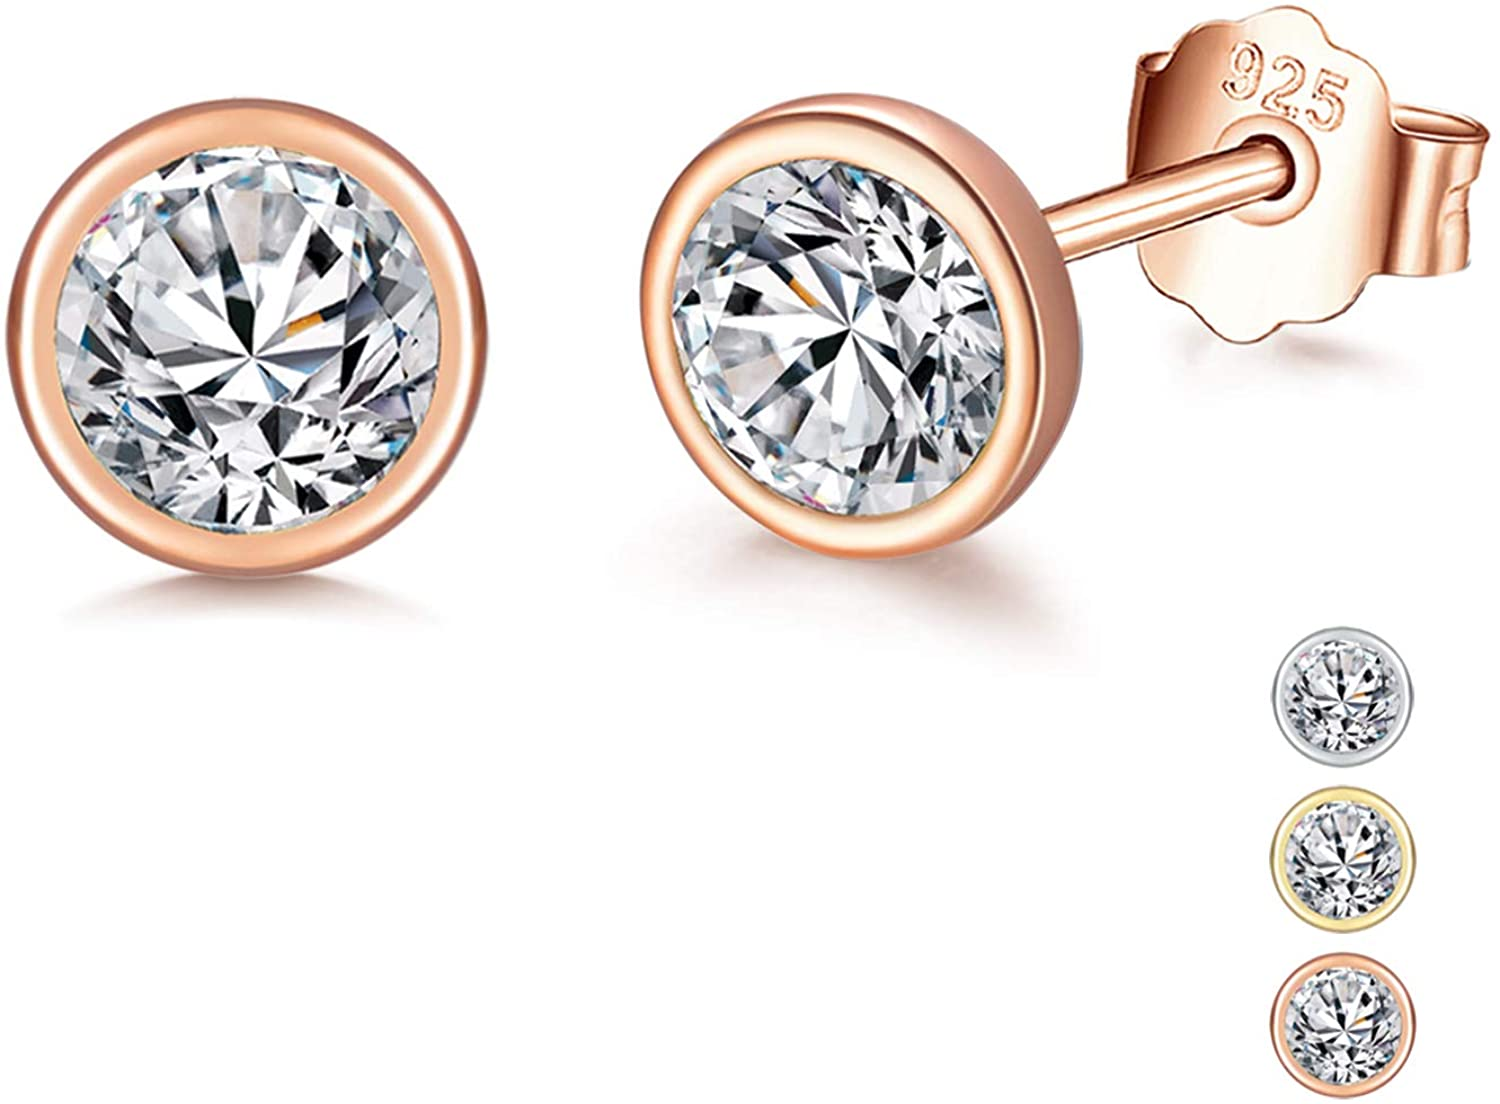 Ccino 925 Sterling Silver Stud Earrings for Women, Silver Stud Earrings with Cubic Zirconia, Hypoallergenic Small Sleeper Cartilage Studs for men, Sizes 3/4/5/6mm, 3 Colors in Silver/Gold/Rose Gold